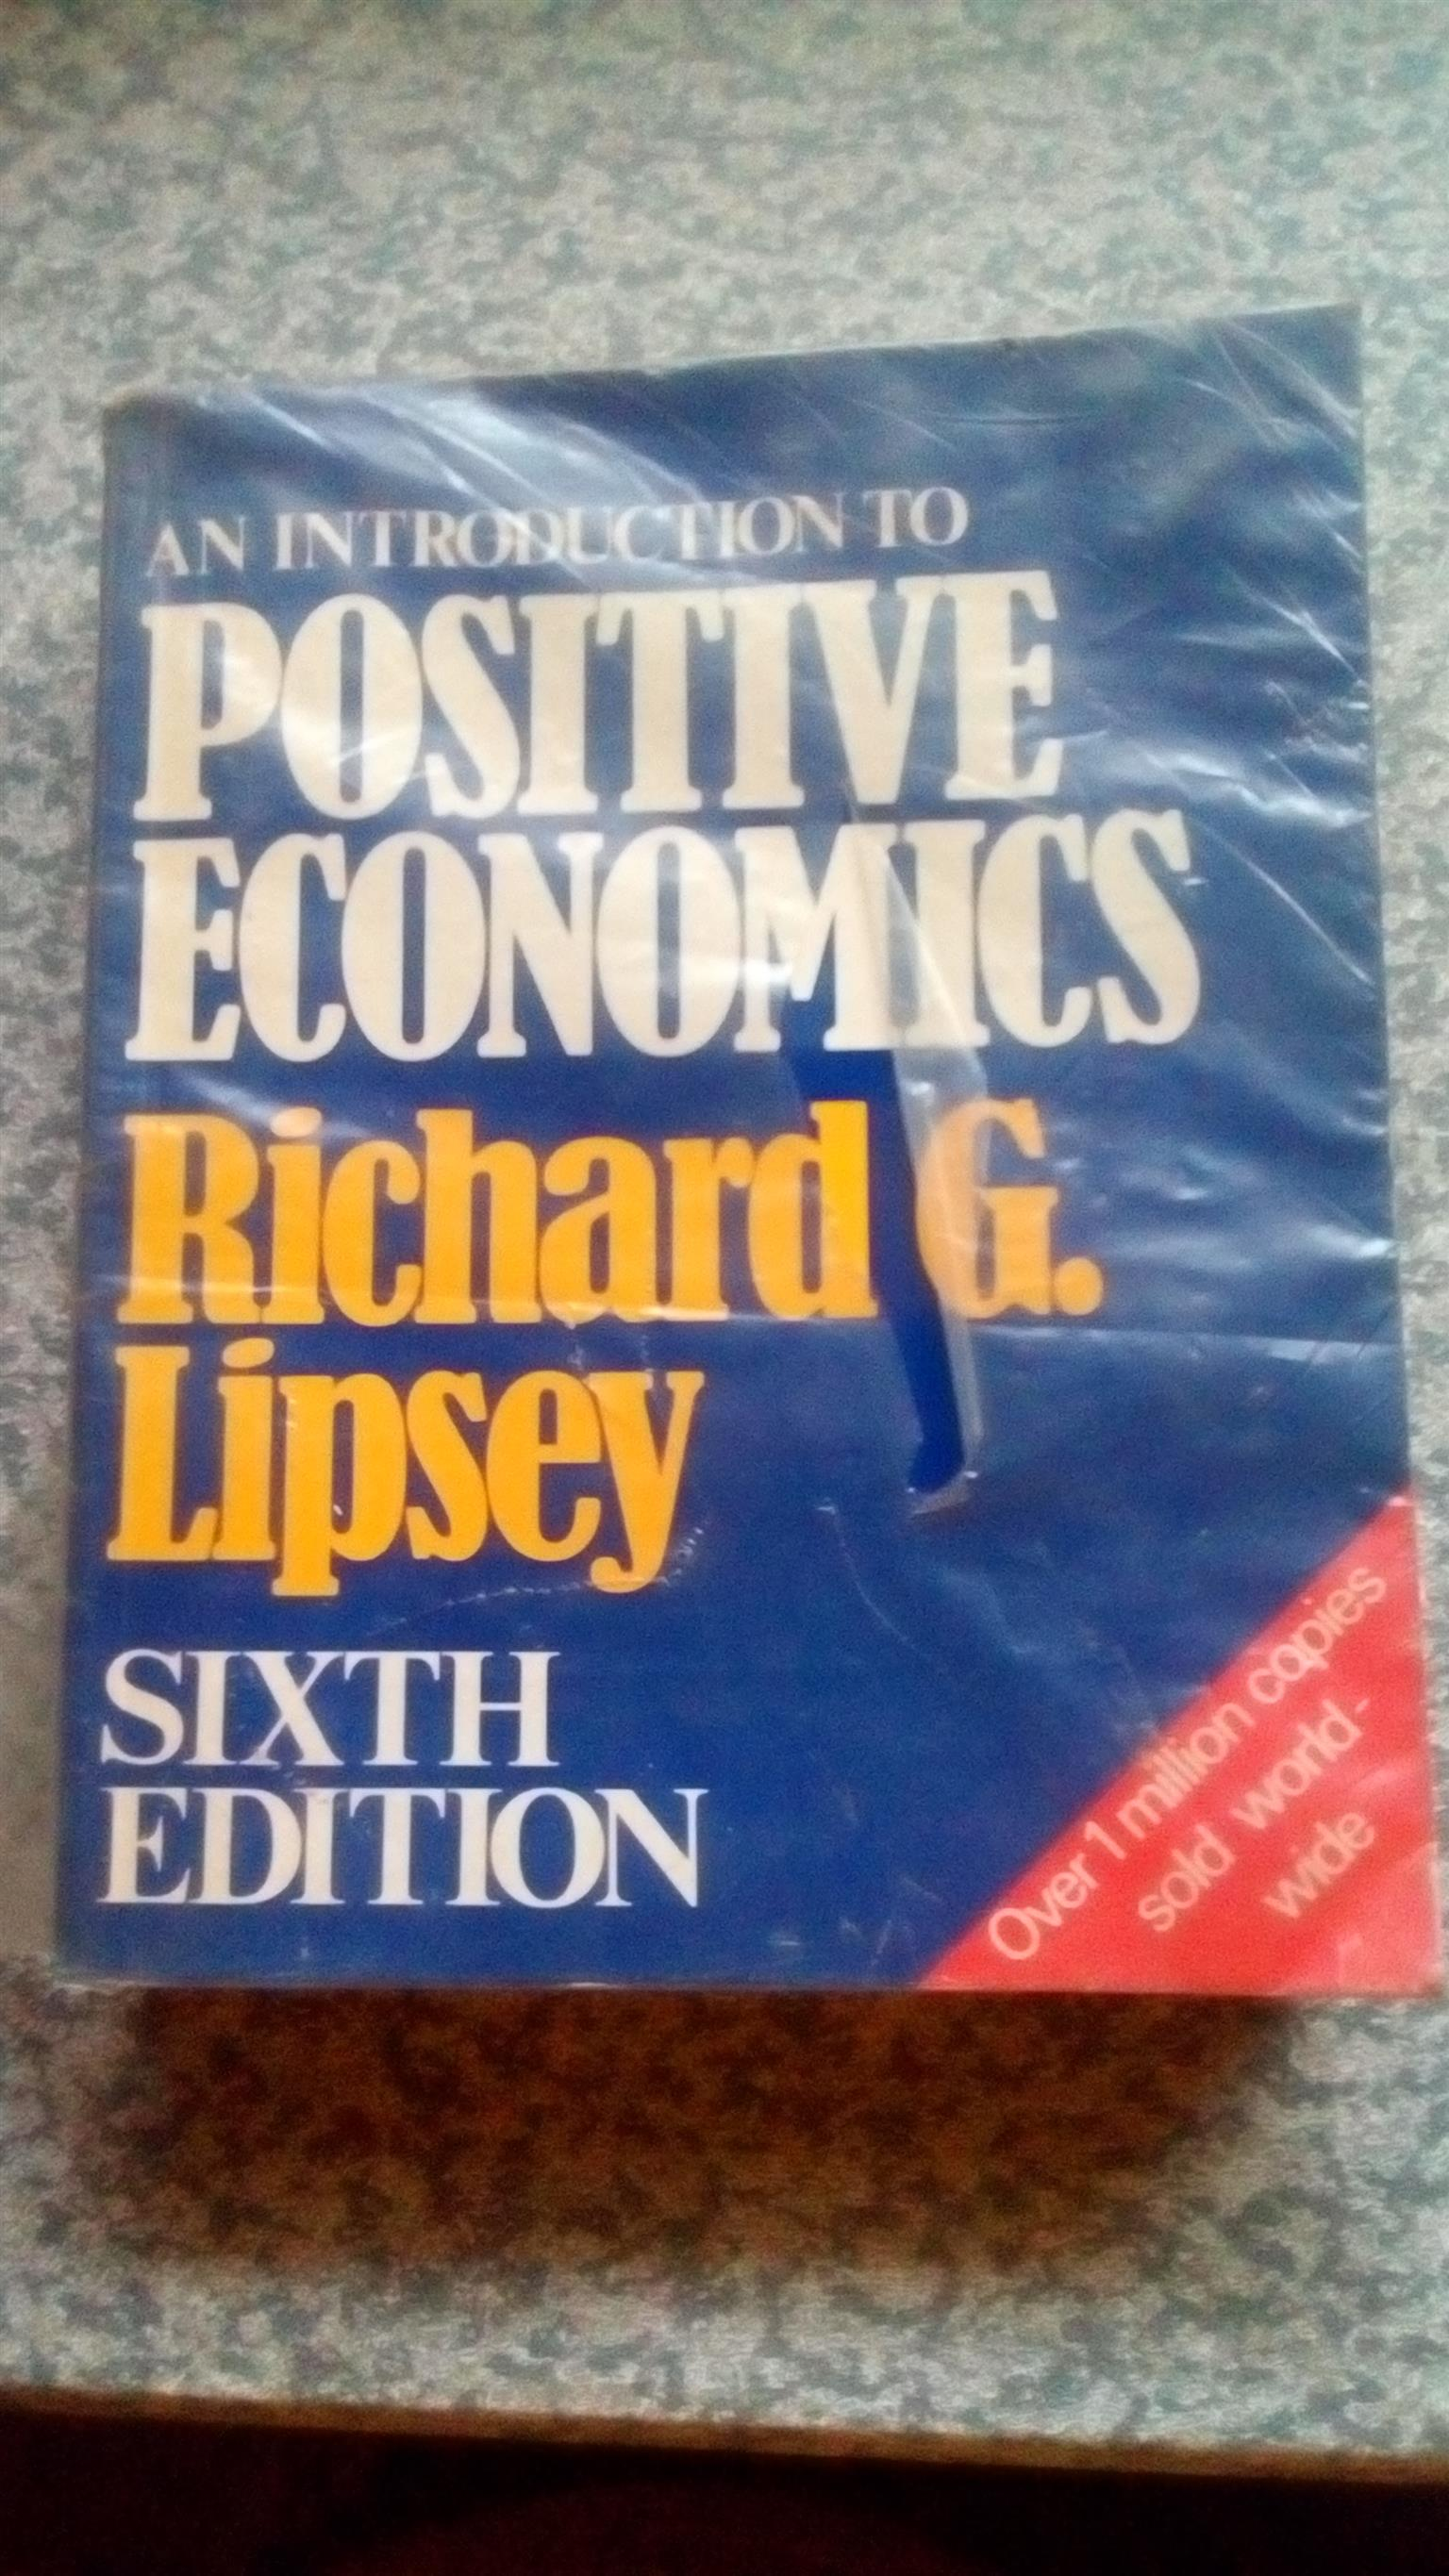 Introduction to Positive Economics (6th Edition) by Richard G. Lipsey